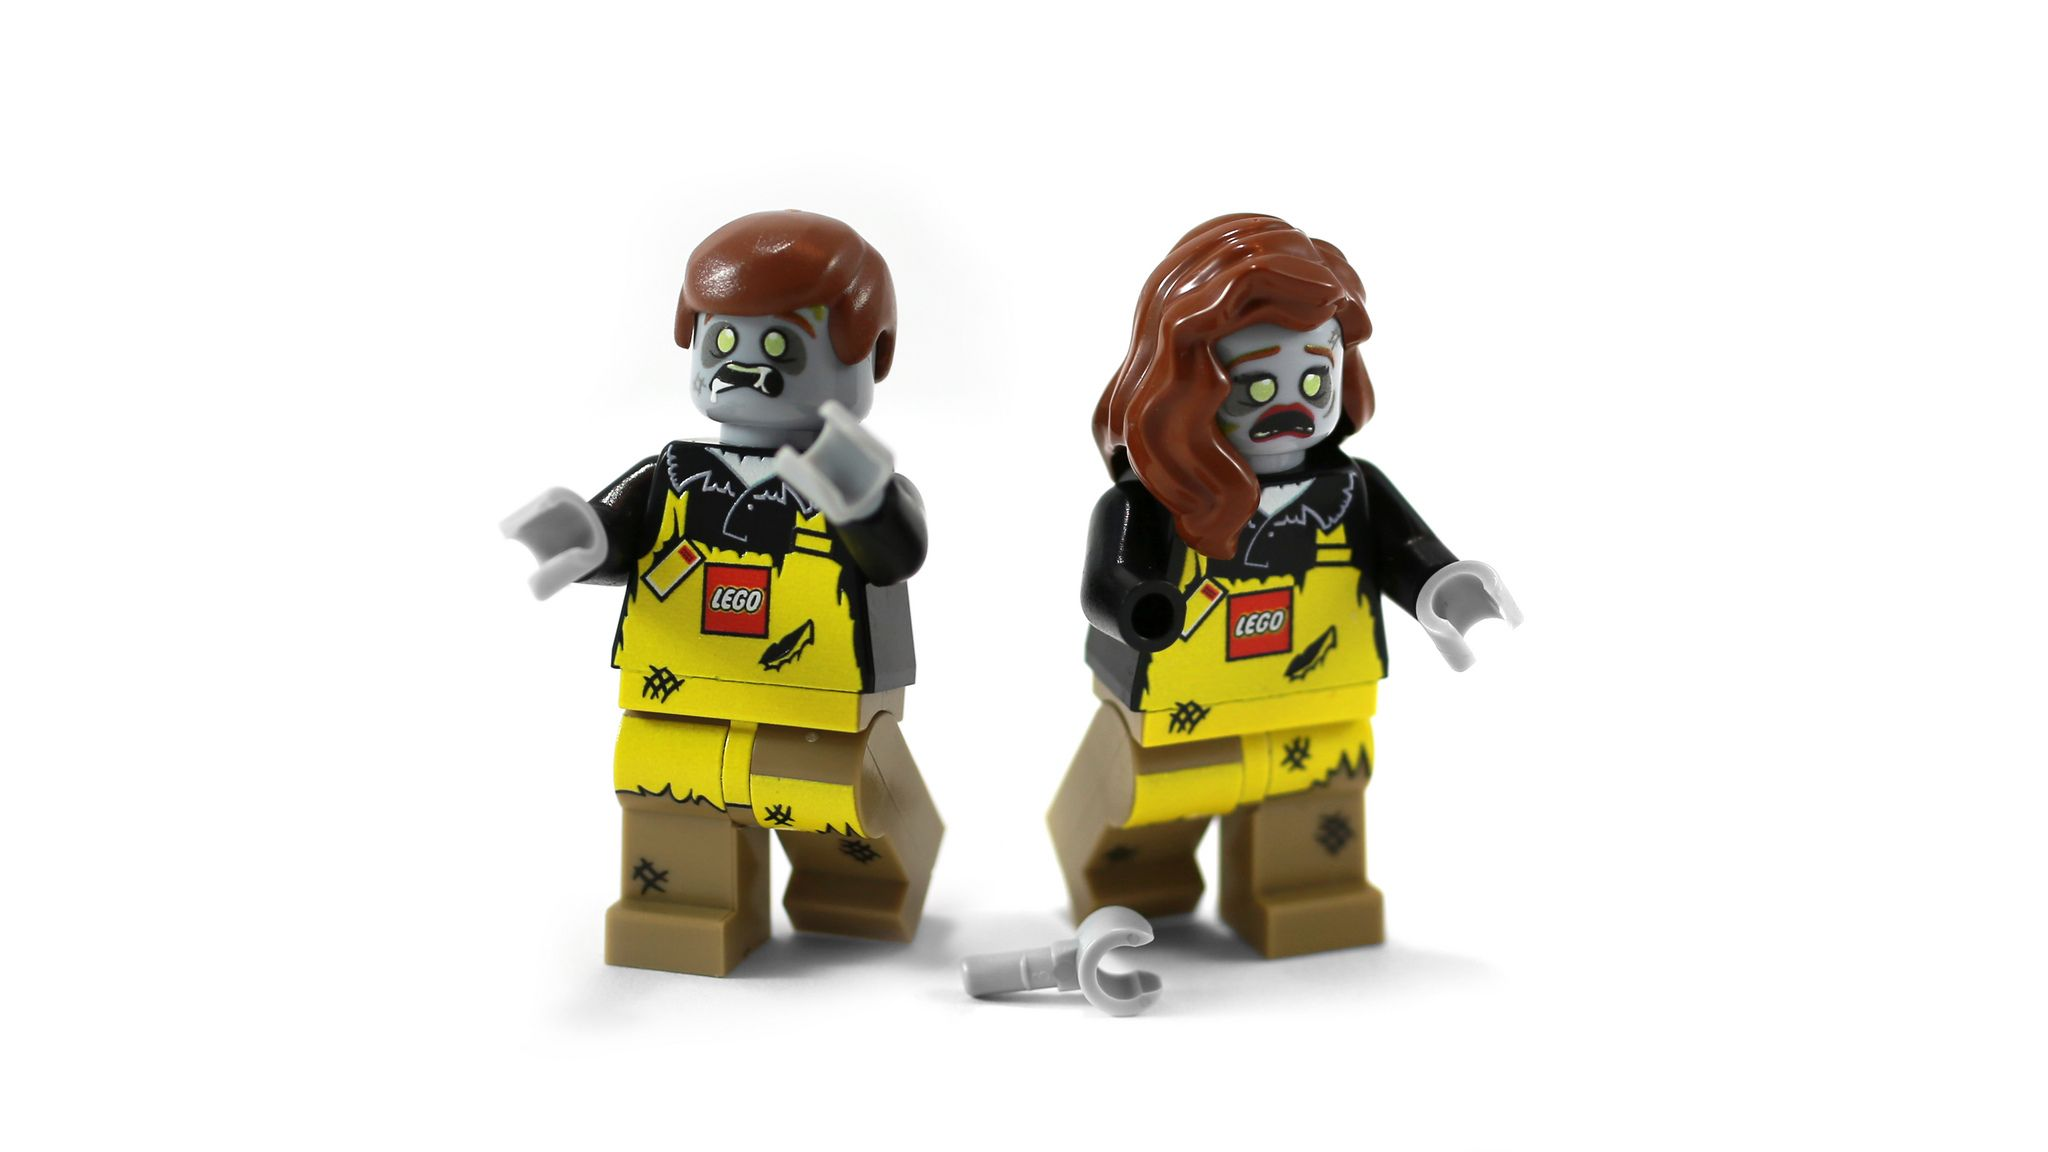 """https://flic.kr/p/DfnPhz 